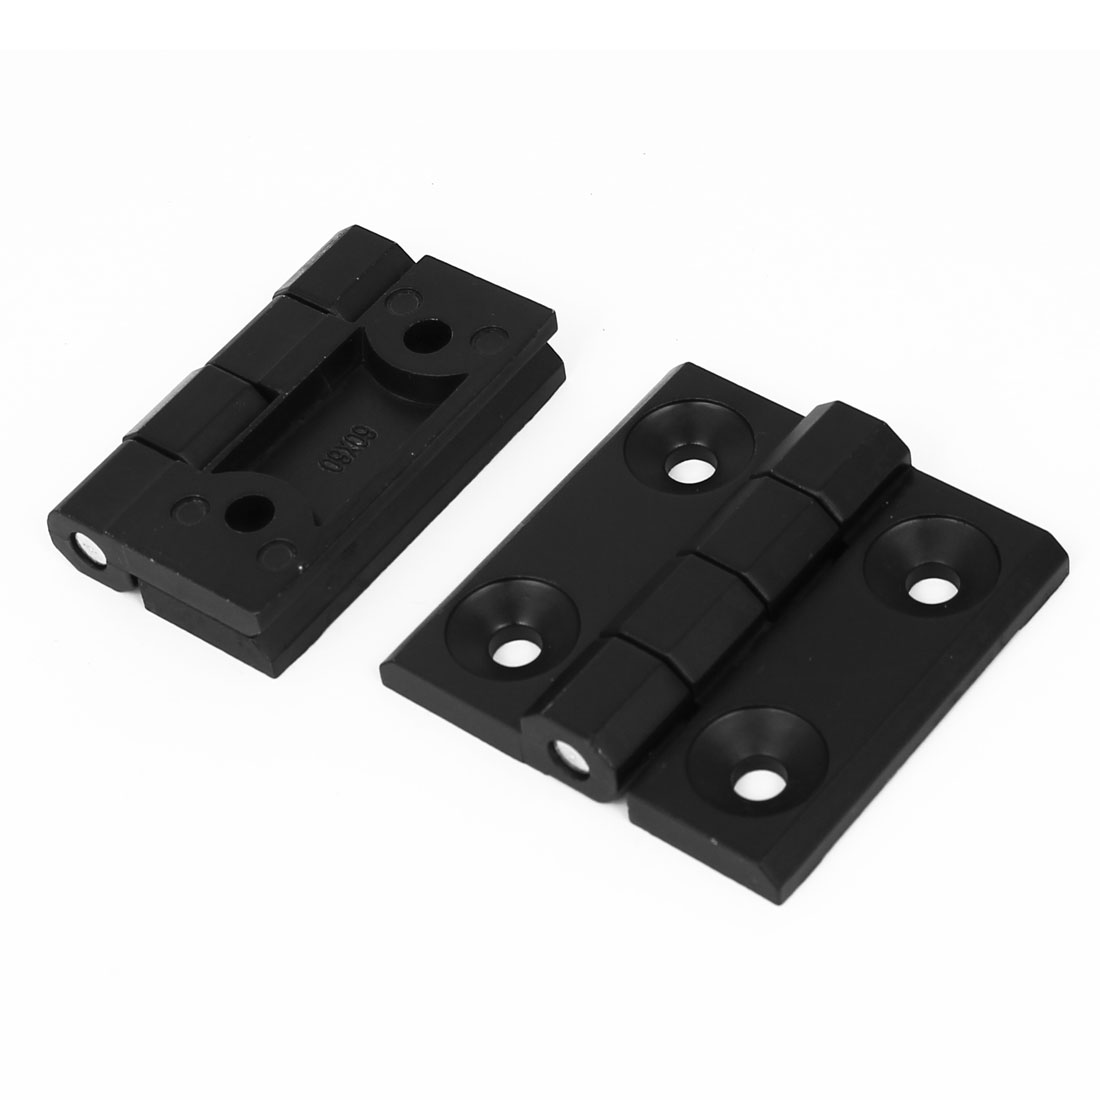 Closet Cupboard Cabinet 60mm x 60mm Zinc Alloy Door Butt Hinge Black 2pcs